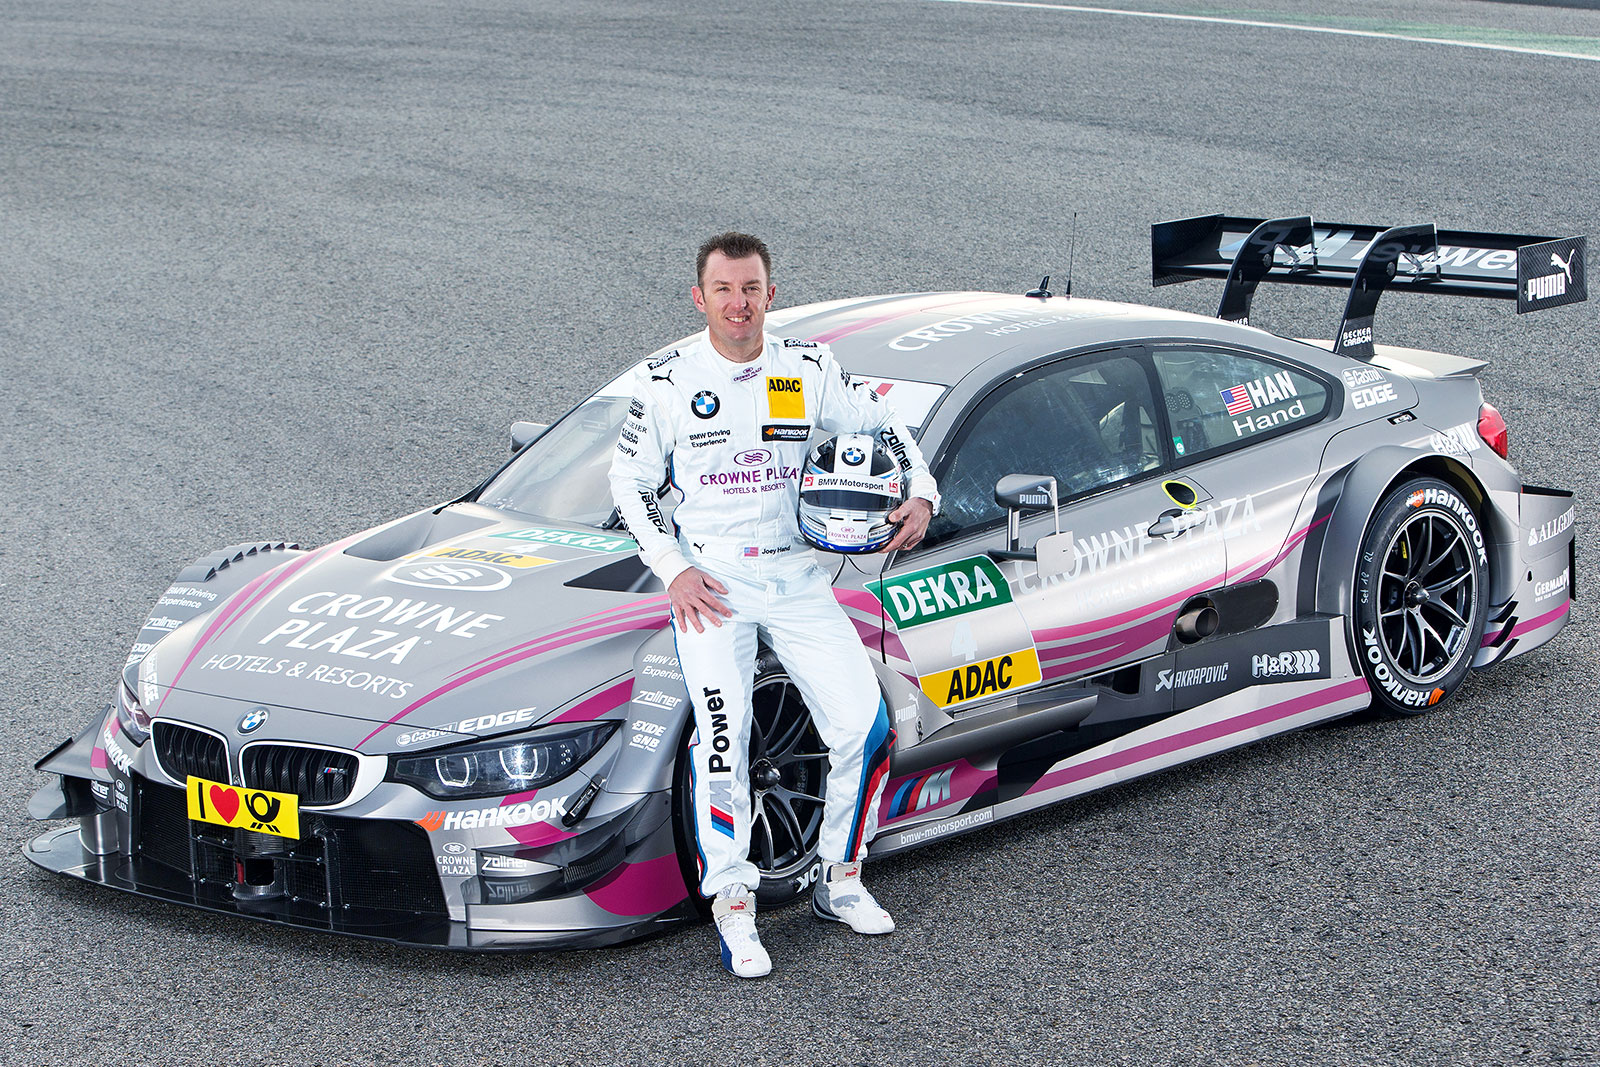 Bmw Drops Joey Hand For 2015 Dtm Championship Autoevolution